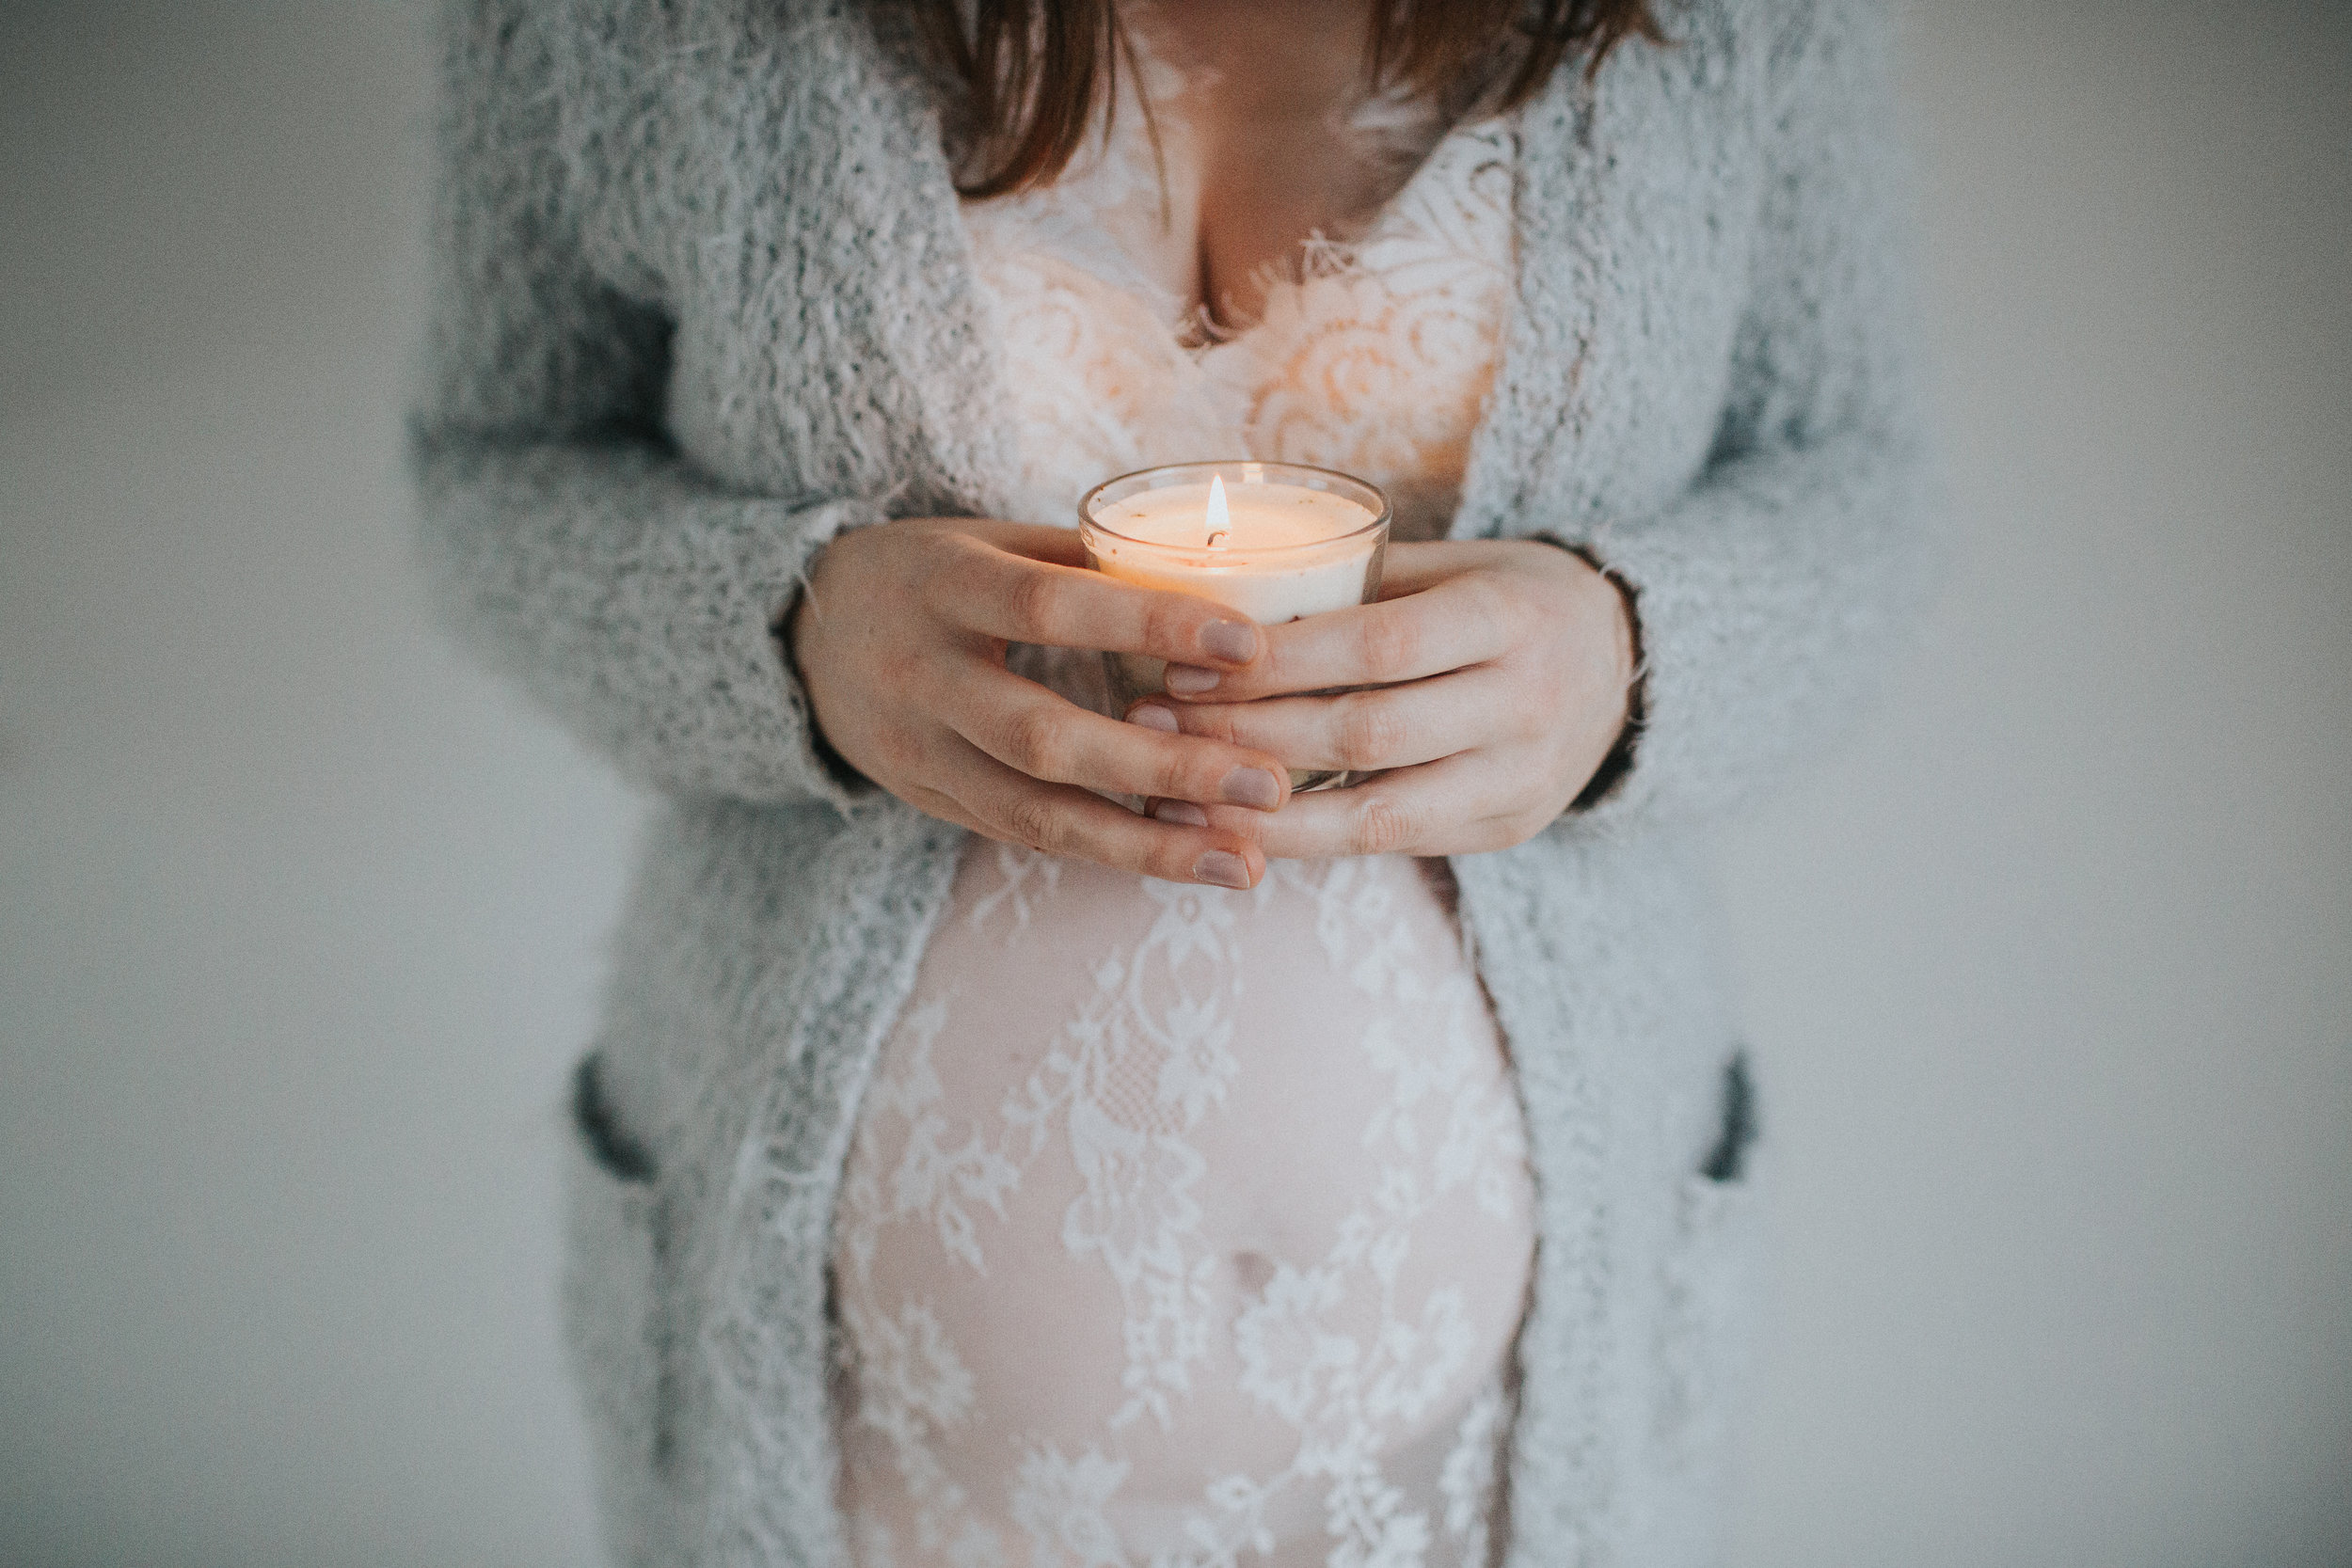 blog about hygge, slow living and simplifying www.houseofsmilla.com/blog - Rauhnacht, the magical days between Christmas and New Years